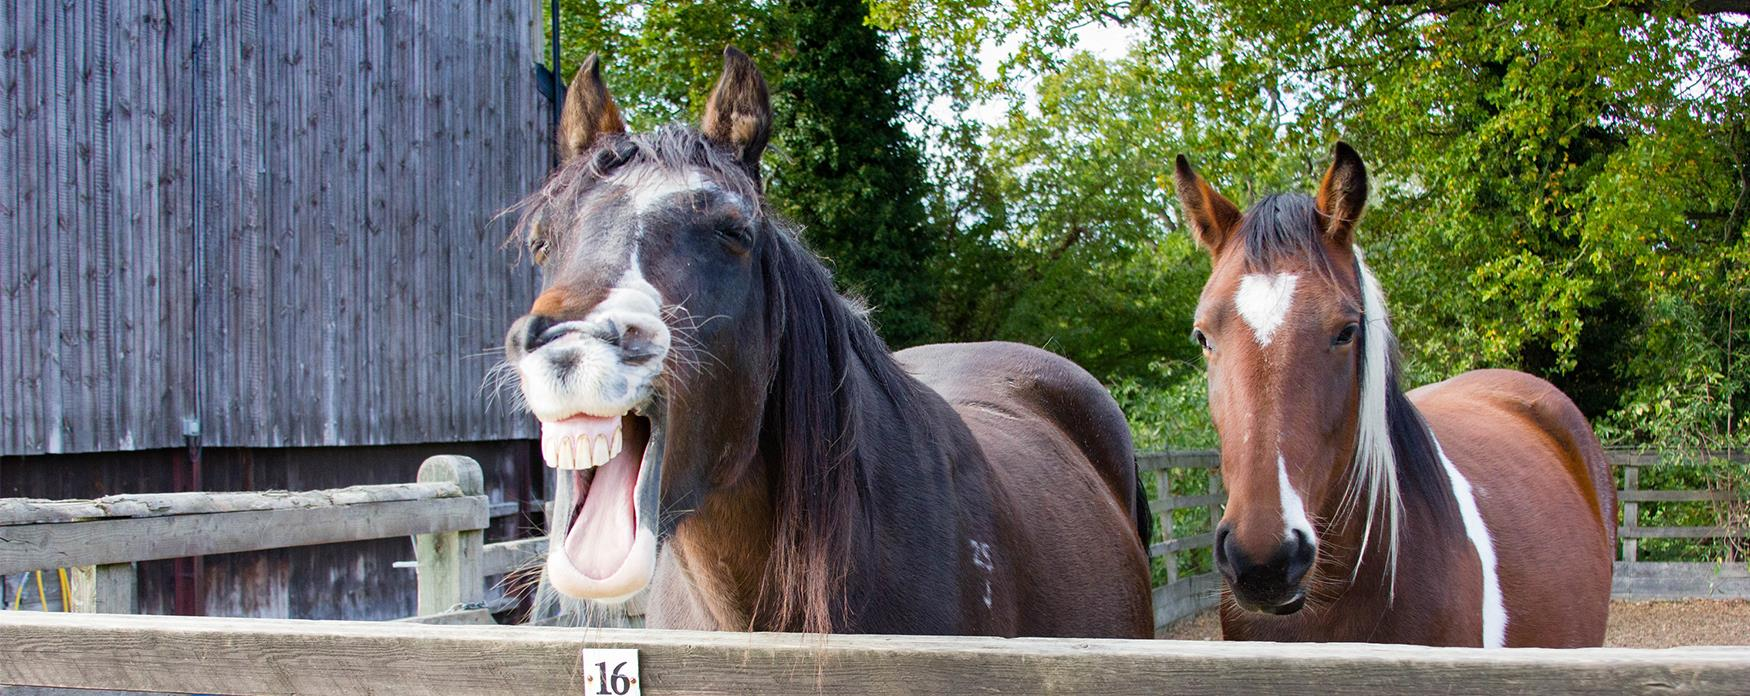 2 horses, one laughing